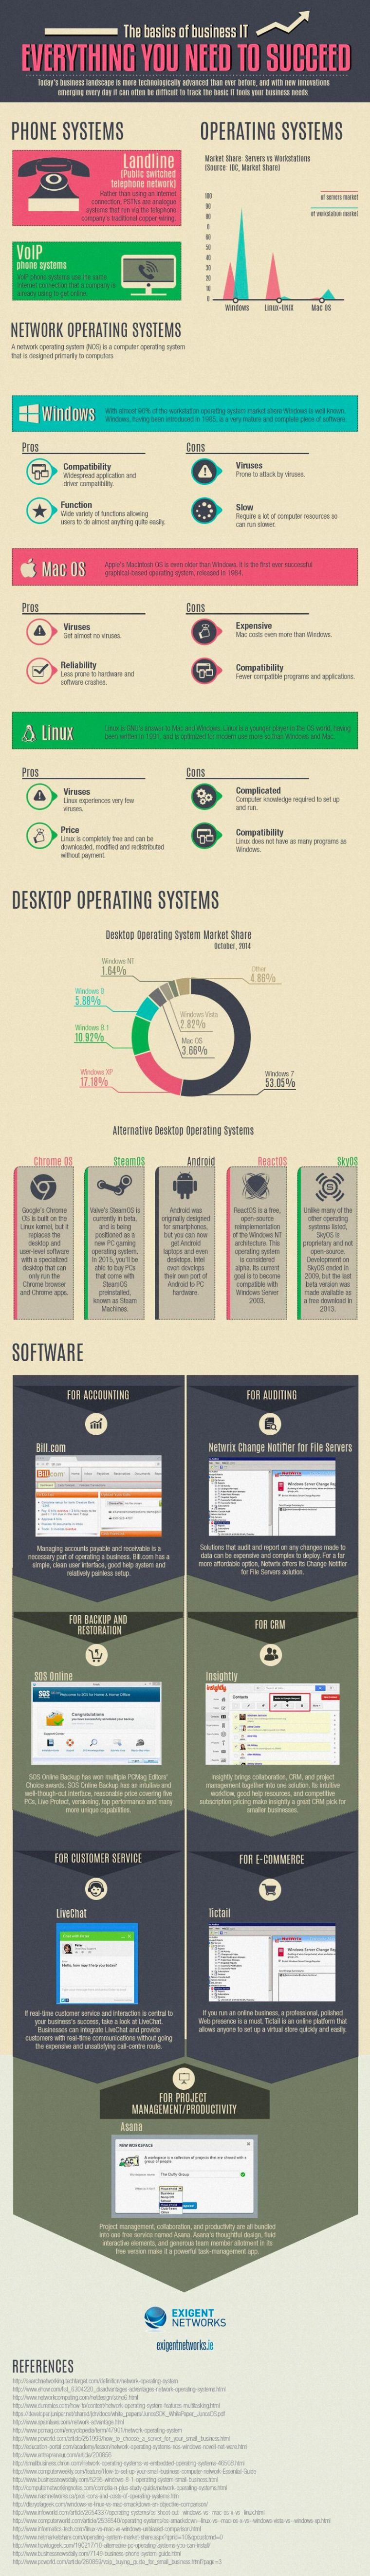 Business IT basics - infographic by Exigent Networks